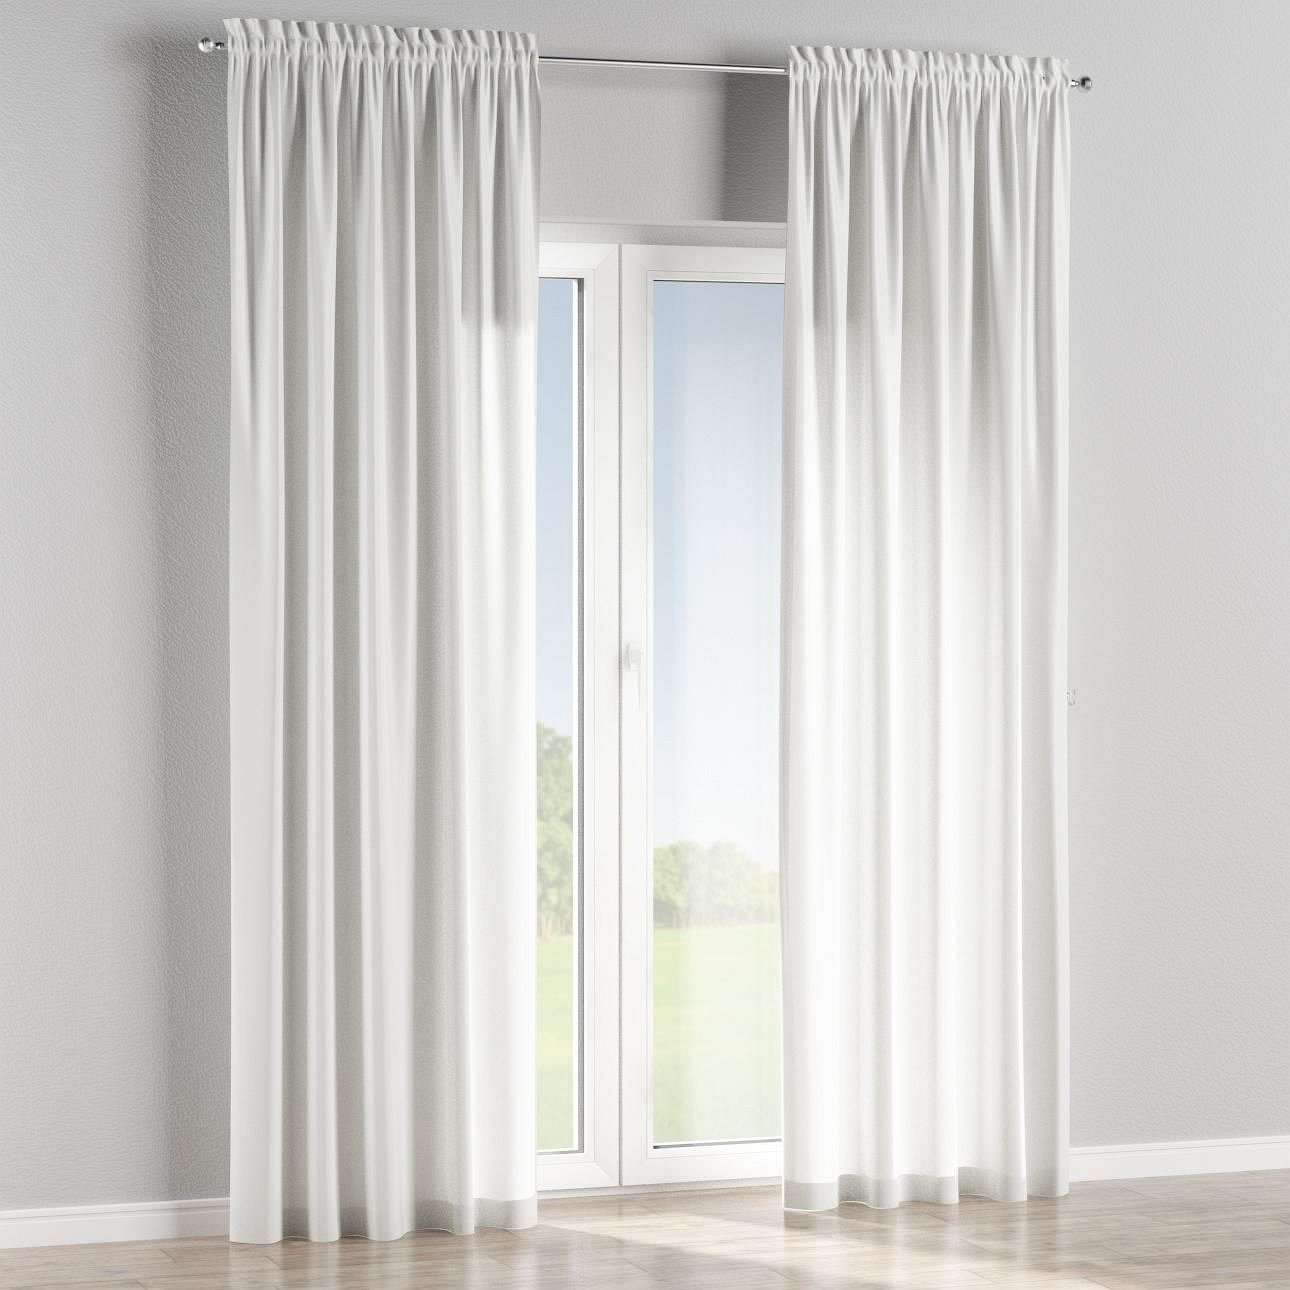 Slot and frill lined curtains in collection Rustica, fabric: 138-13